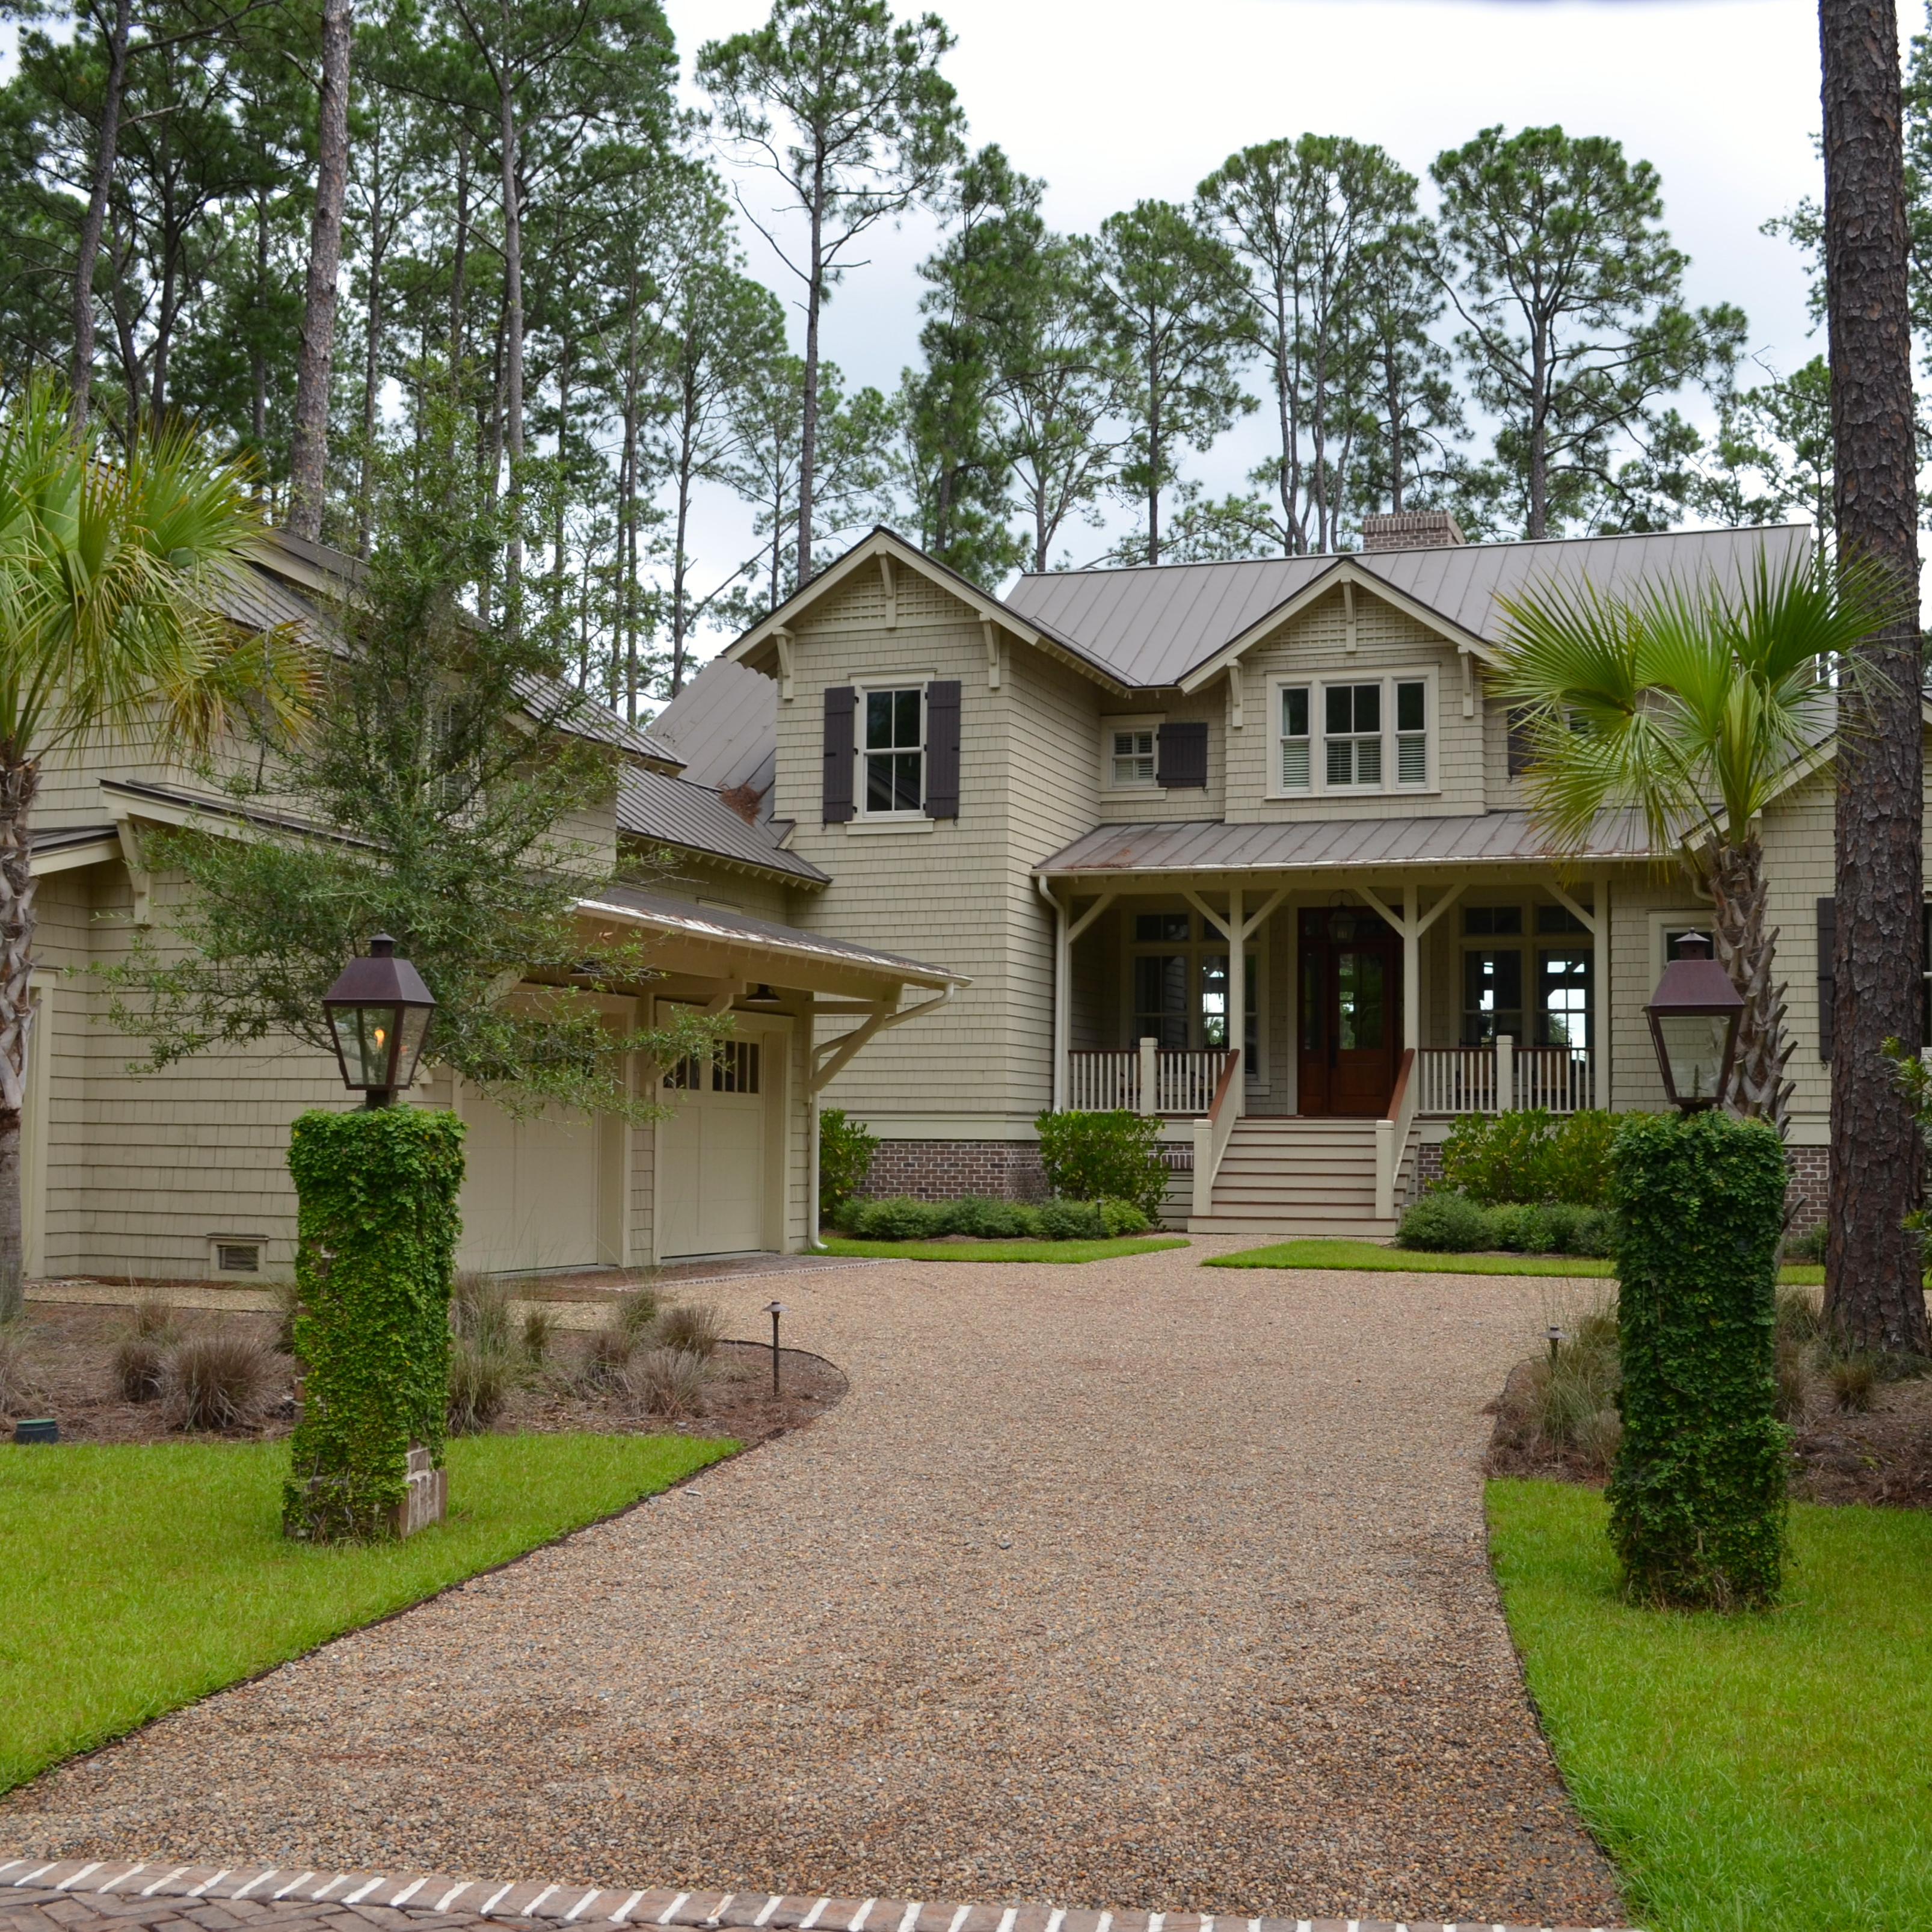 The Lovely Lowcountry Homes Of Palmetto Bluff After